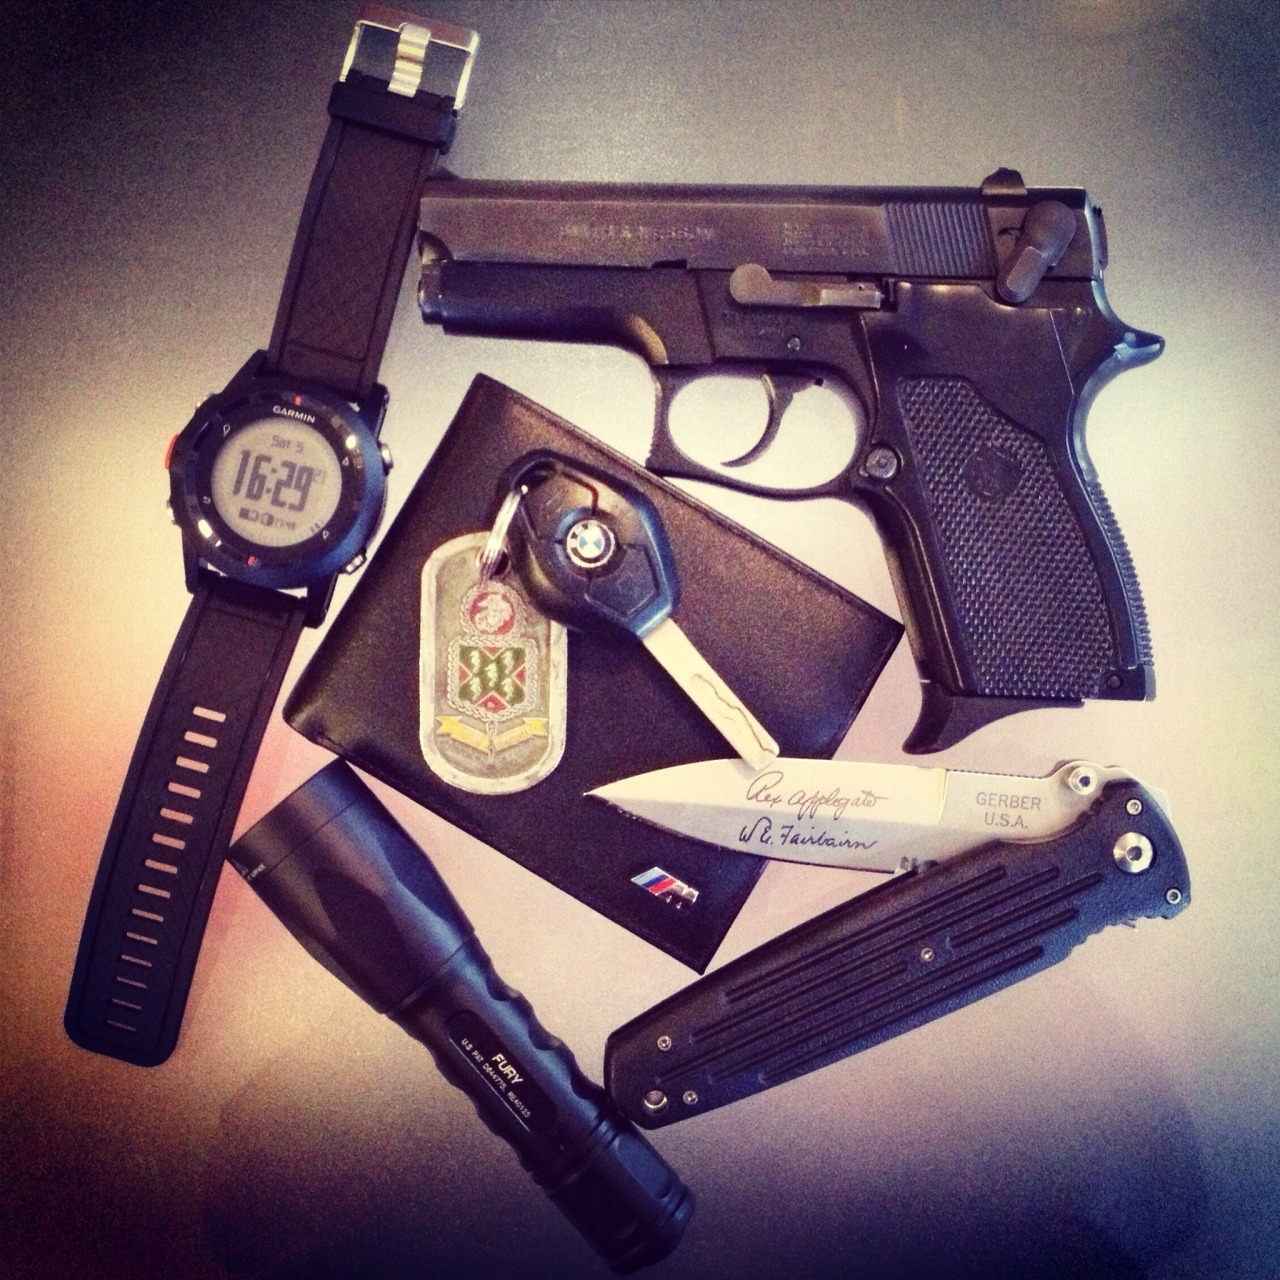 Everyday Carry Submitted By: cullen61918 S&W 469 w/ Hornady Critical Defense Ammunition Gerber Applegate Combat Folder - Purchase on Amazon Surefire Fury - Purchase on Amazon Garmin Fenix - Purchase on Amazon BMW M Wallet - Purchase on Amazon BMW E46 M3 Key w/ 5th Marines 230th Marine Corps Birthday Ball Coin